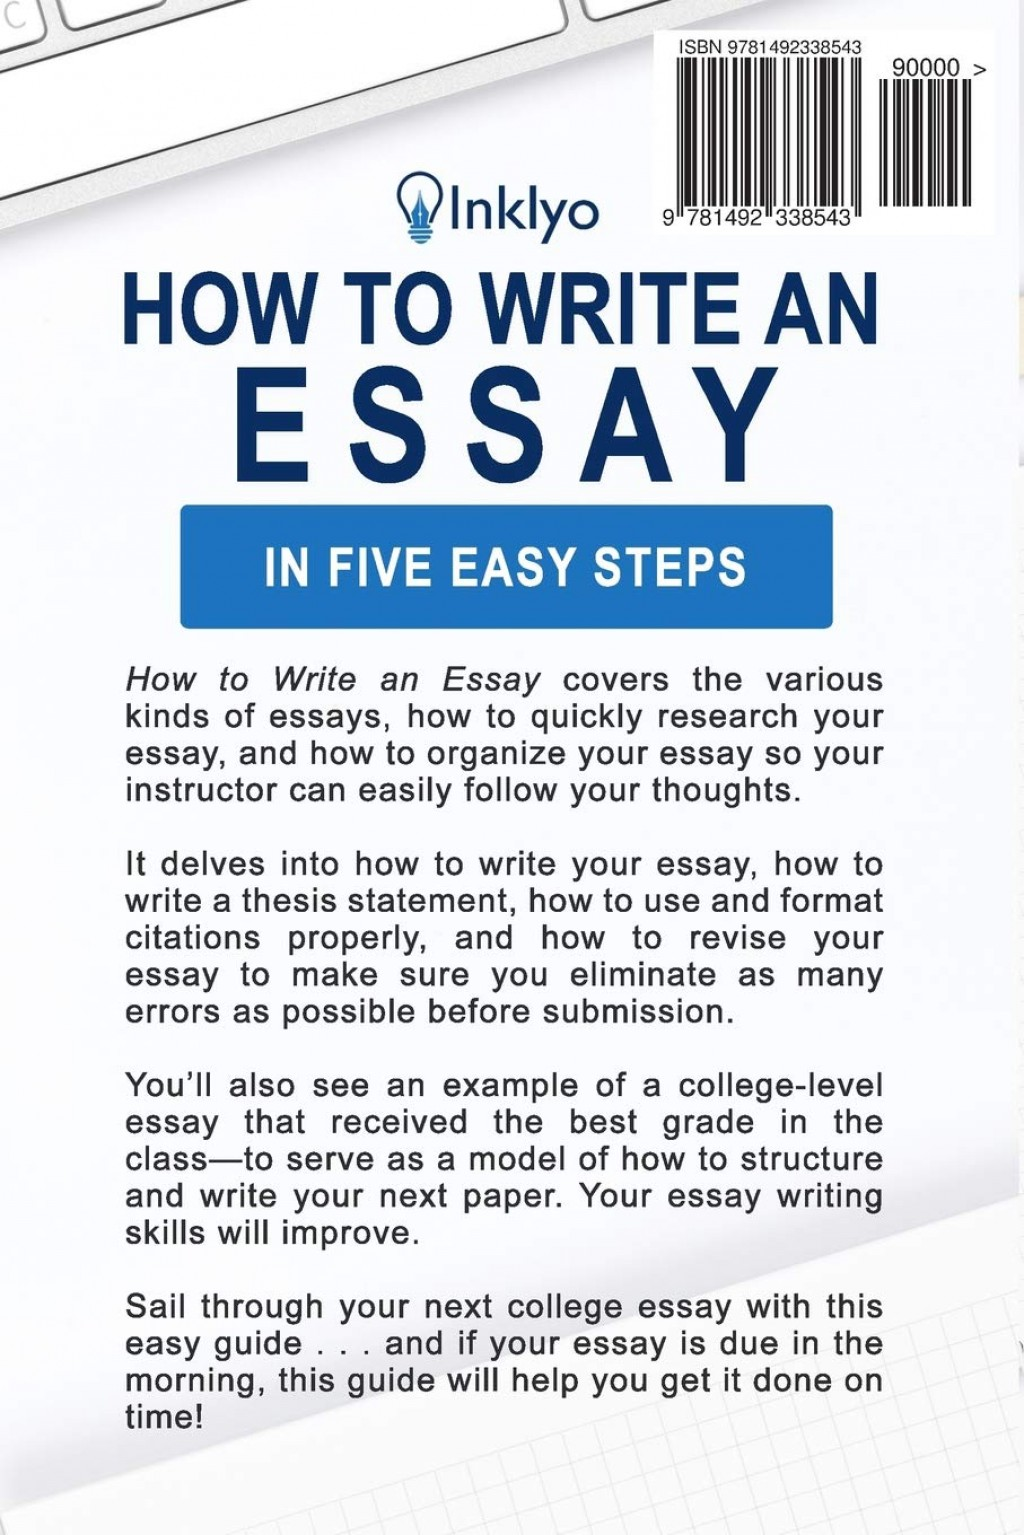 002 How To Write An Essay Example Shocking About Yourself Without Using I For College English Introduction Large